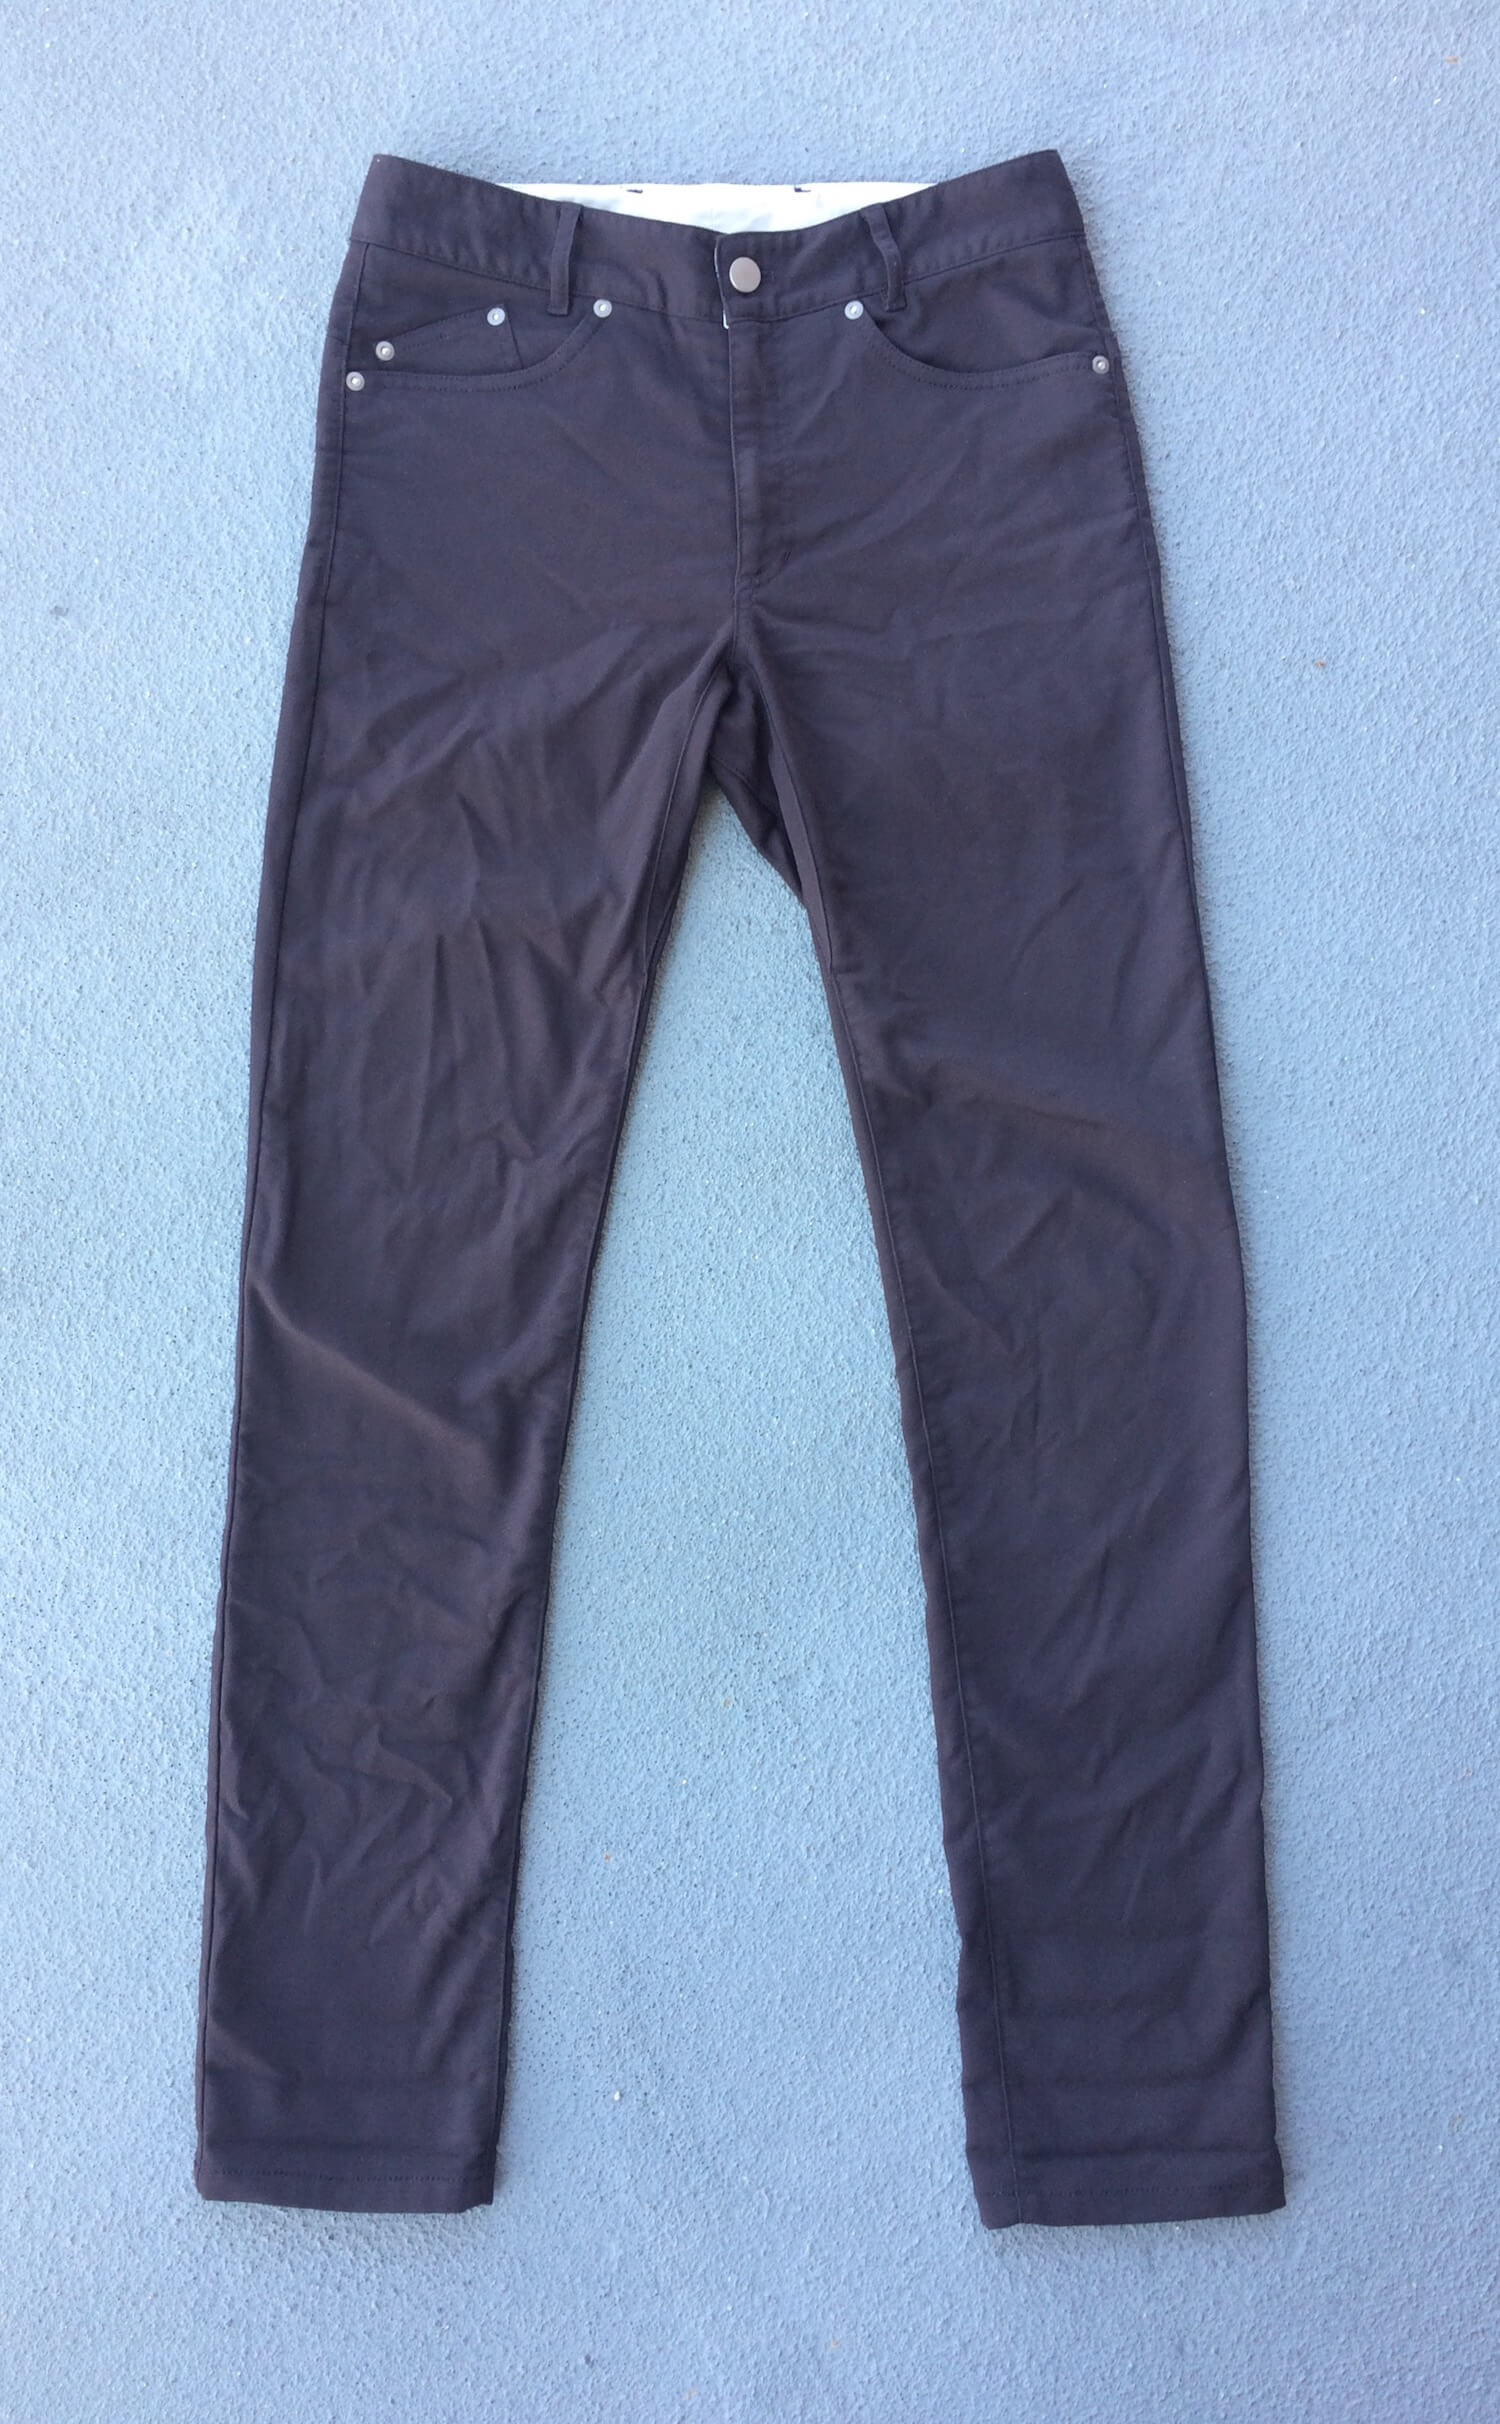 Outlier Slim Dungarees Pants Review